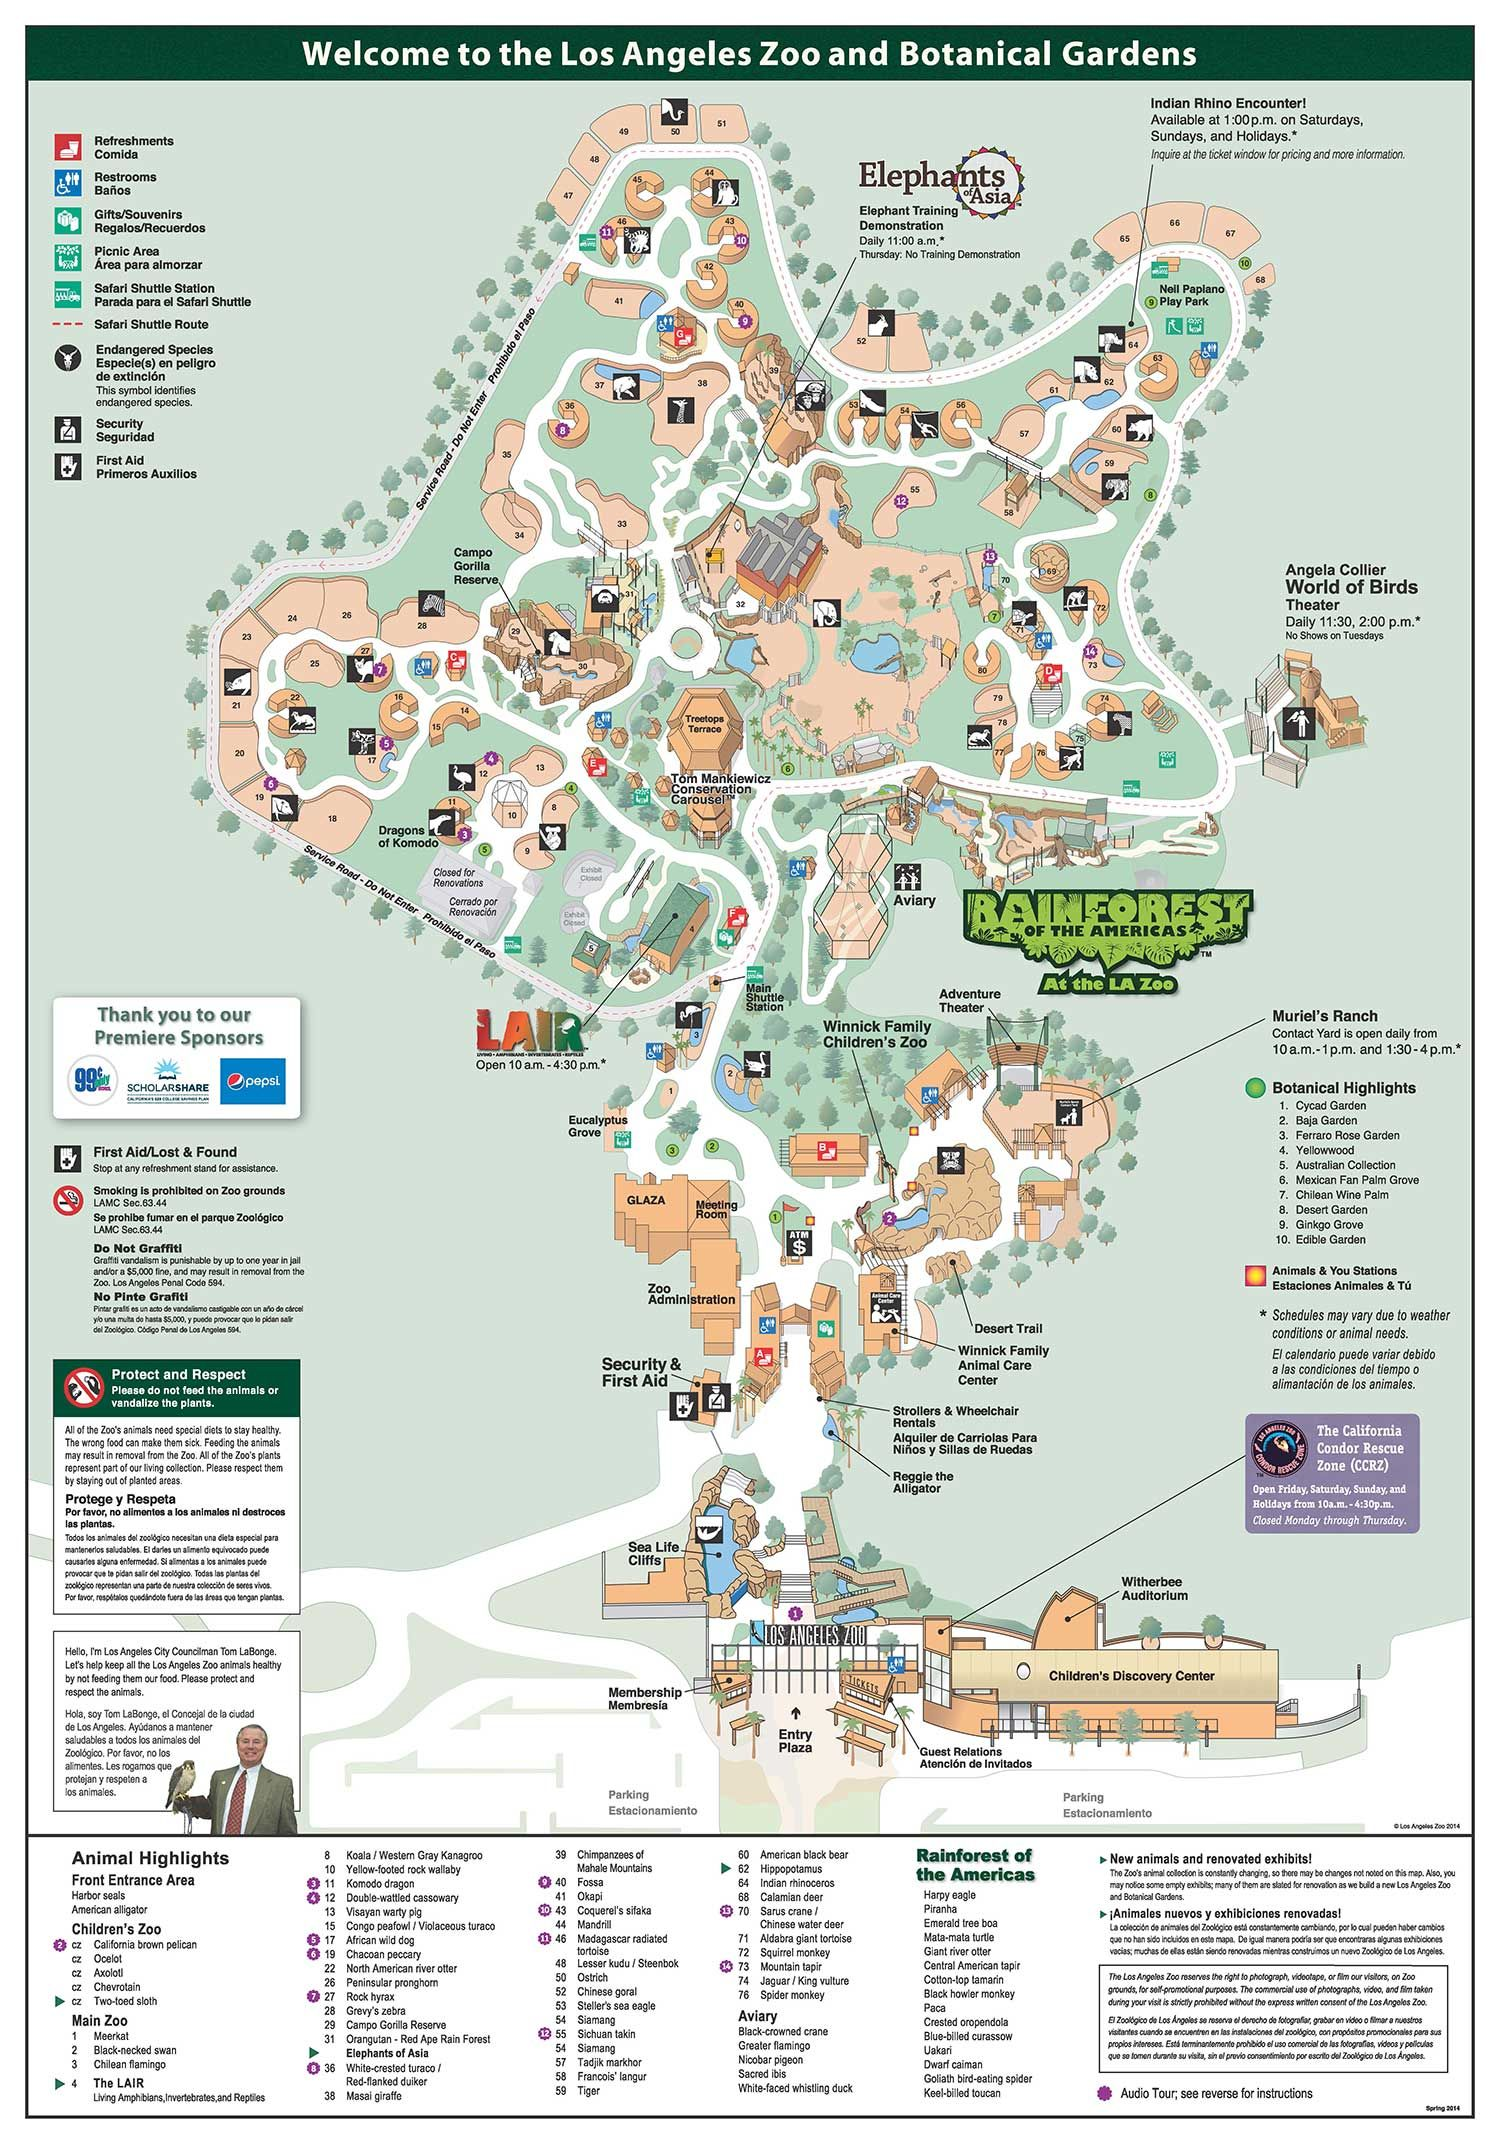 Los Angeles Zoo and Botanical Gardens Zoo Map Los Angeles Zoo and